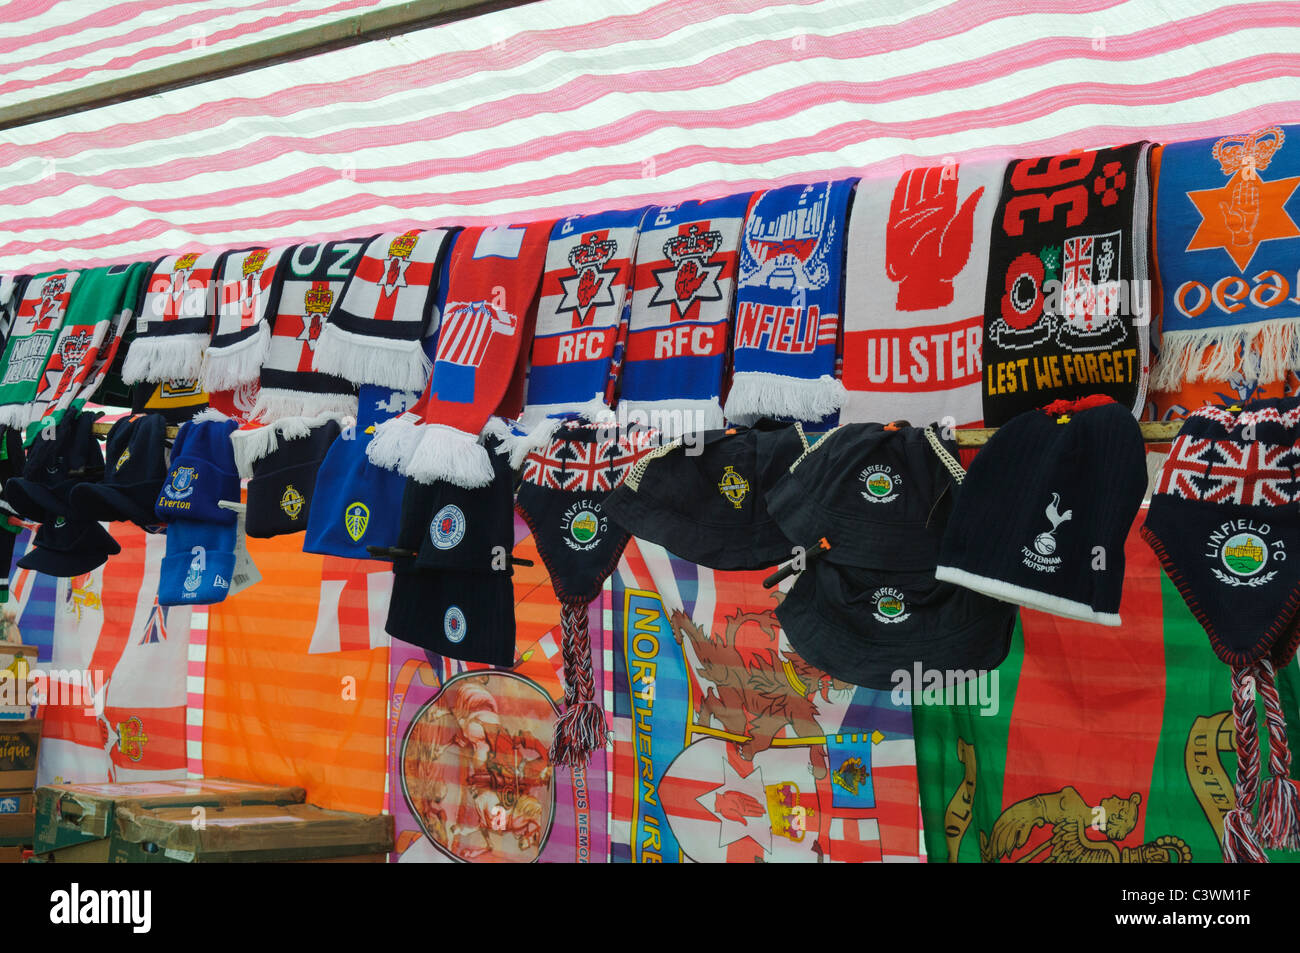 Market stall at a Northern Ireland traditional town fair, selling loyalist memorabilia - Stock Image